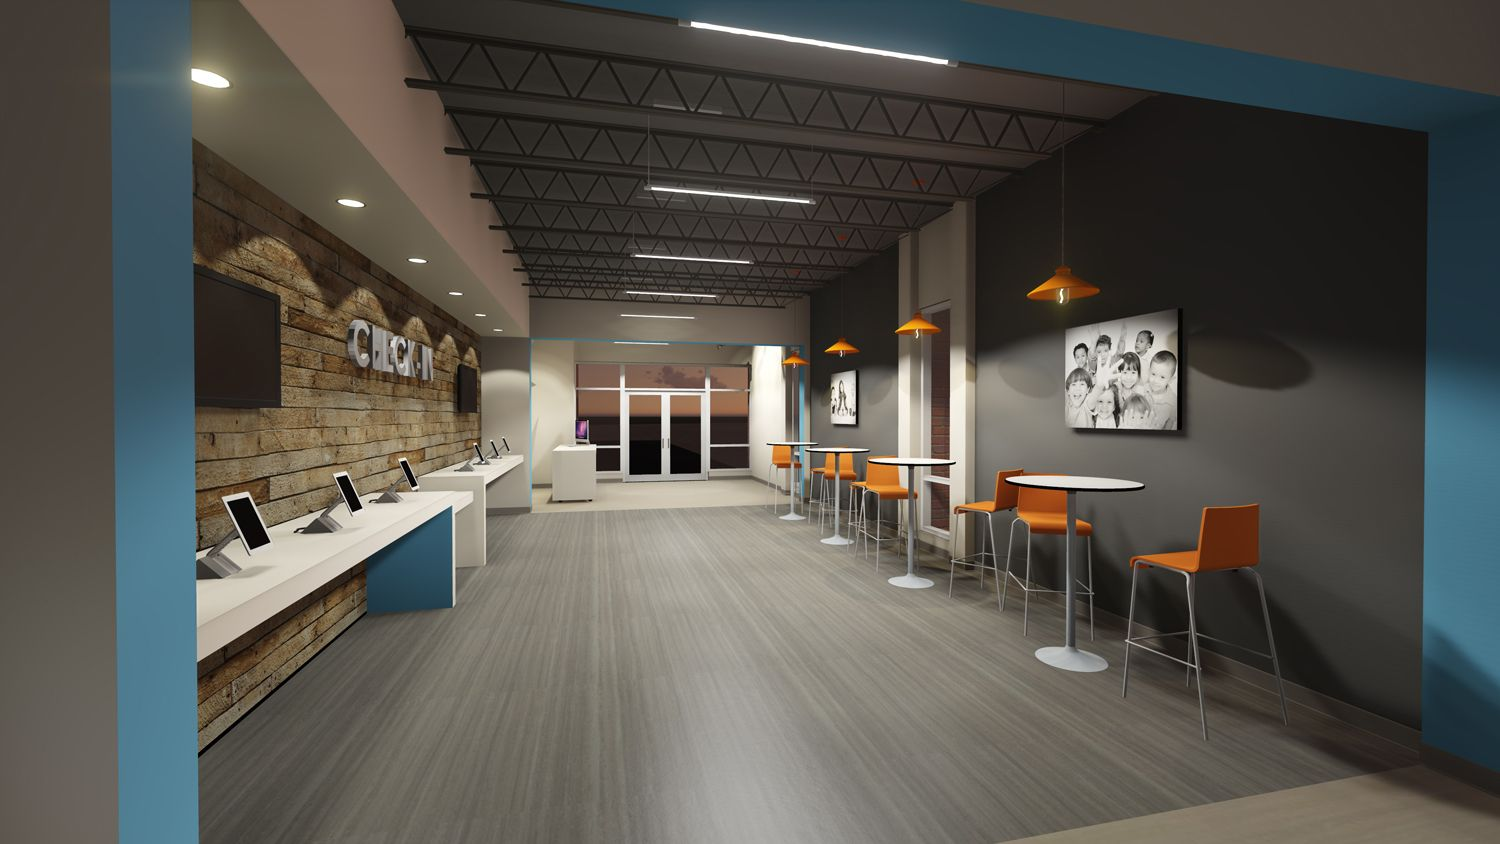 Conceptual Check In Space For Parkwood Baptist Church